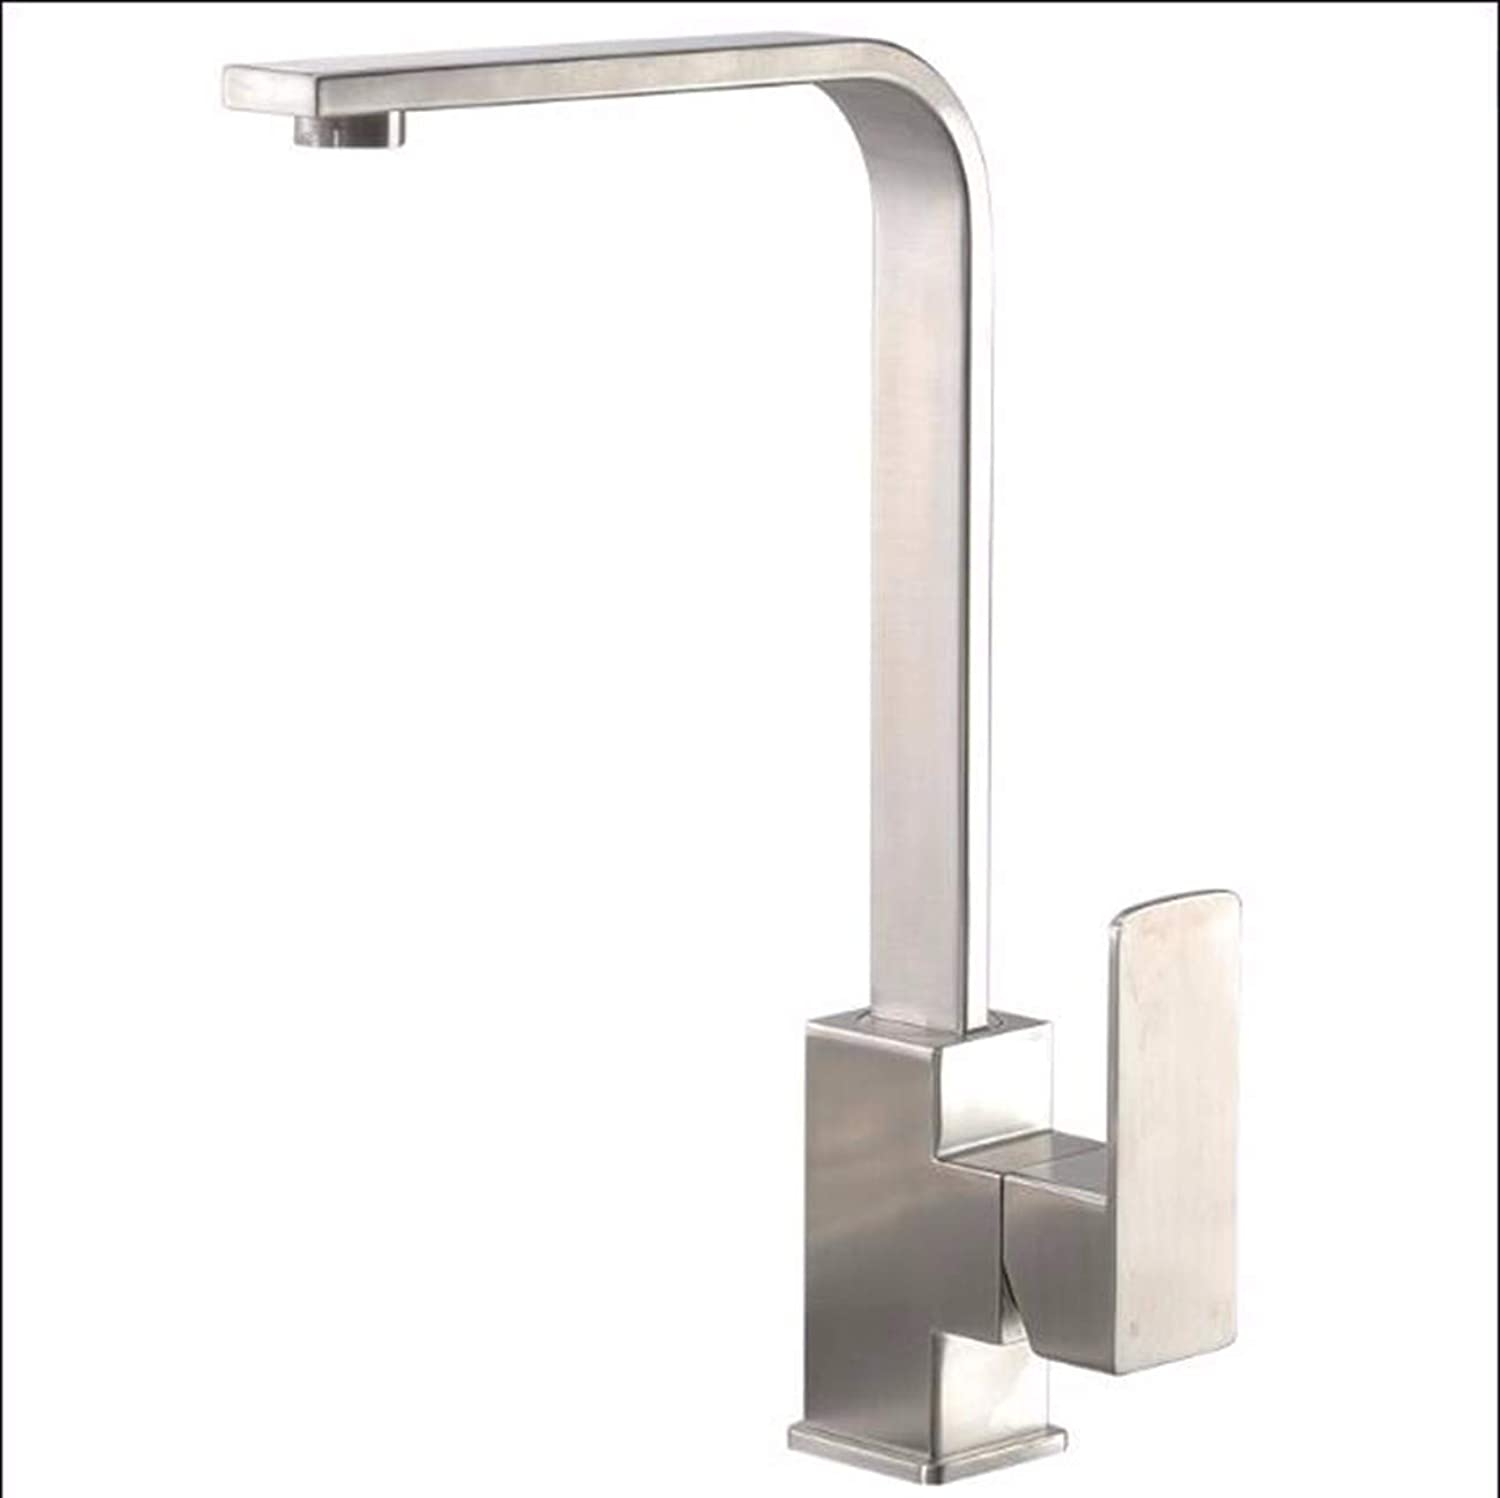 XPYFaucet Faucet Tap Taps Lead-free 304 stainless steel kitchen can be redated hot and cold